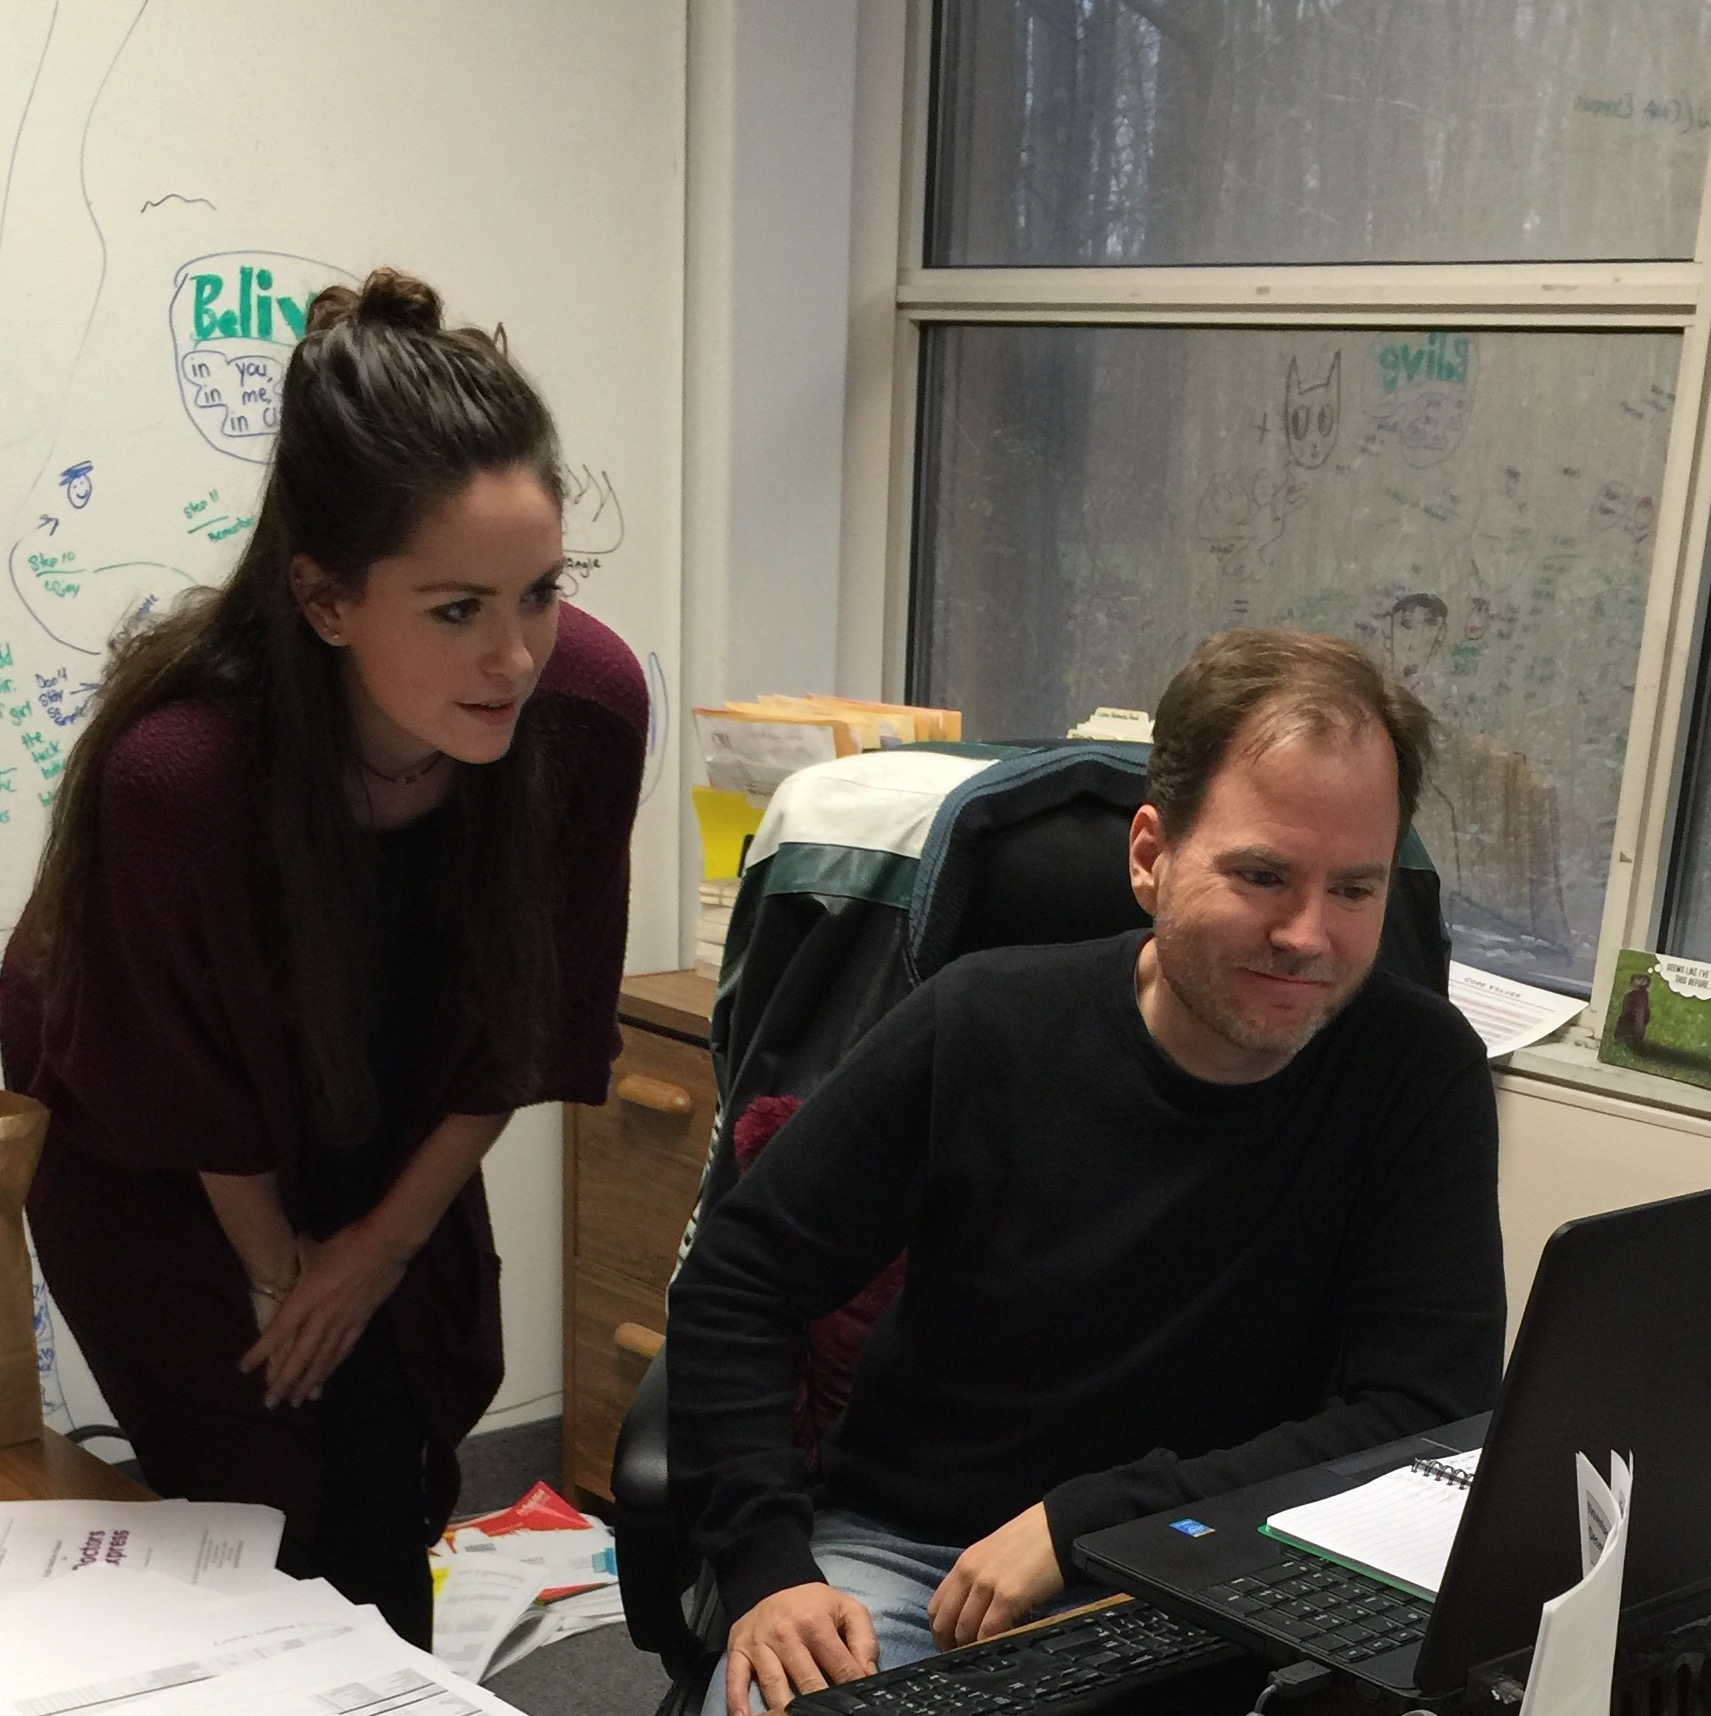 College of New Jersey marketing major Carly Choffo, who lives in Old Bridge, works with Rick Verbanas, marketing and business development director, to further her understanding of marketing as part of her internship at Creative Marketing Alliance.